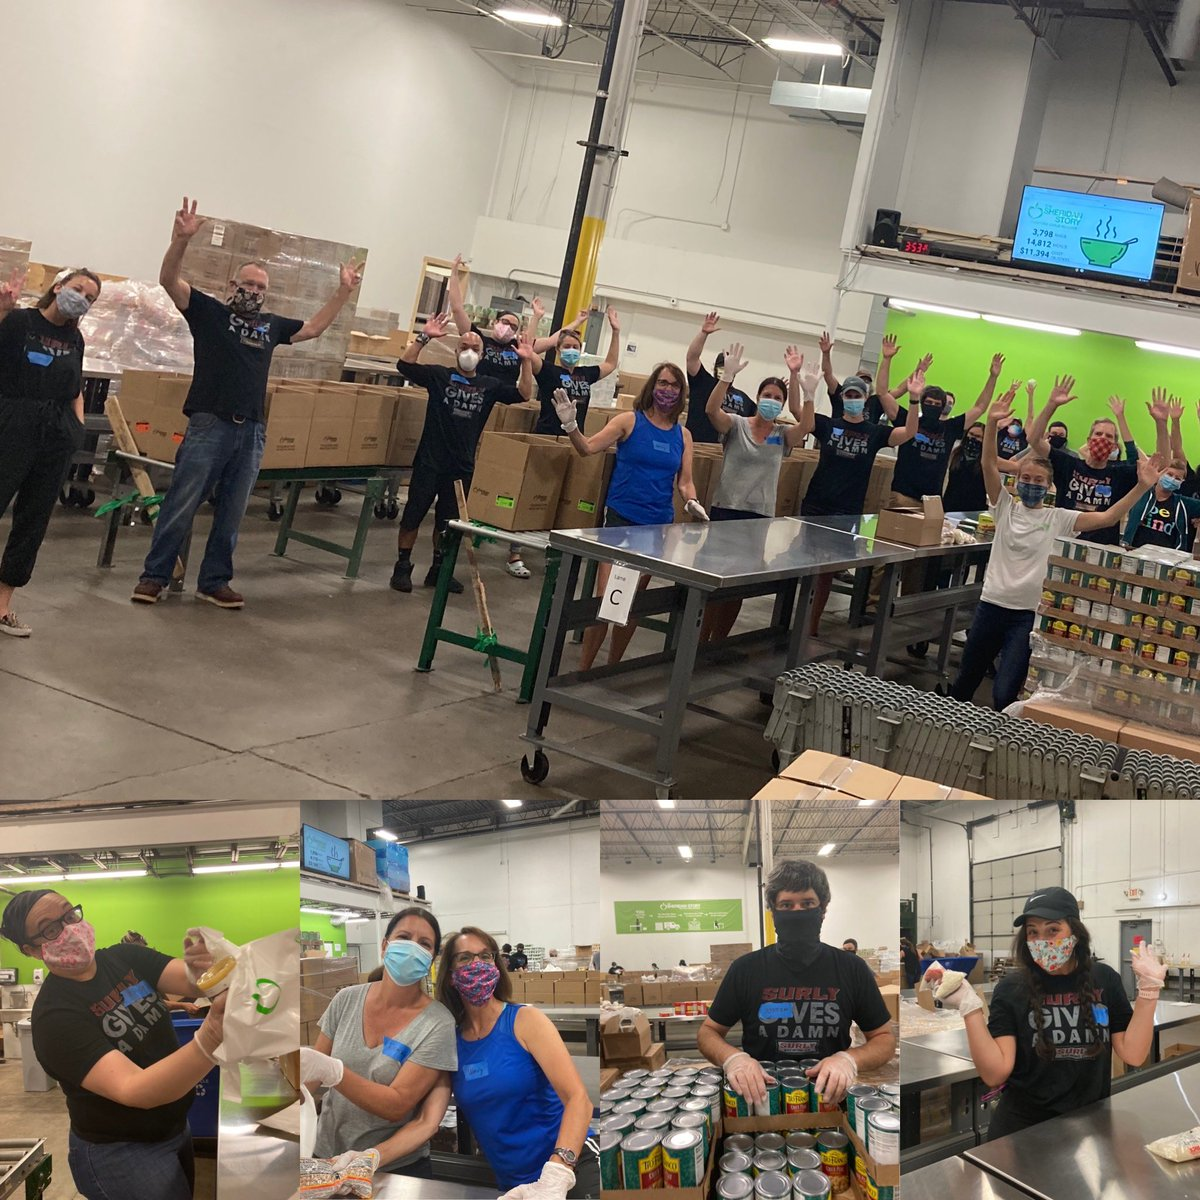 Packed up 3,798 bags of food (that's 14,812 meals) for hungry kids today at @SheridanStory! Job well done all. #SGAD10